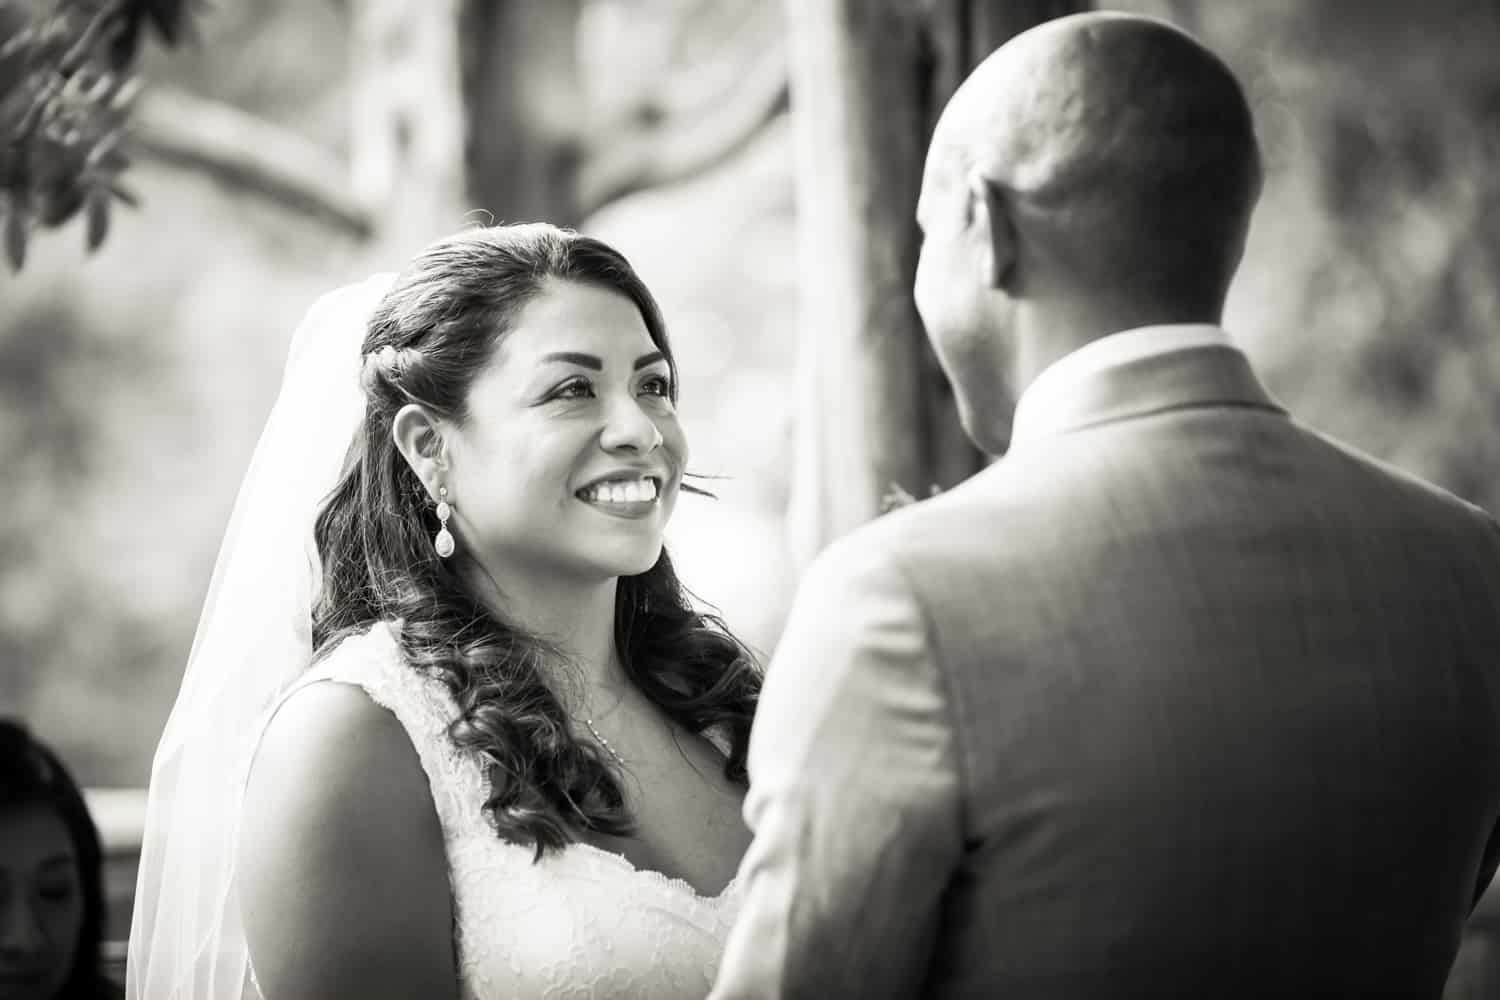 Black and white photo of bride and groom exchanging vows